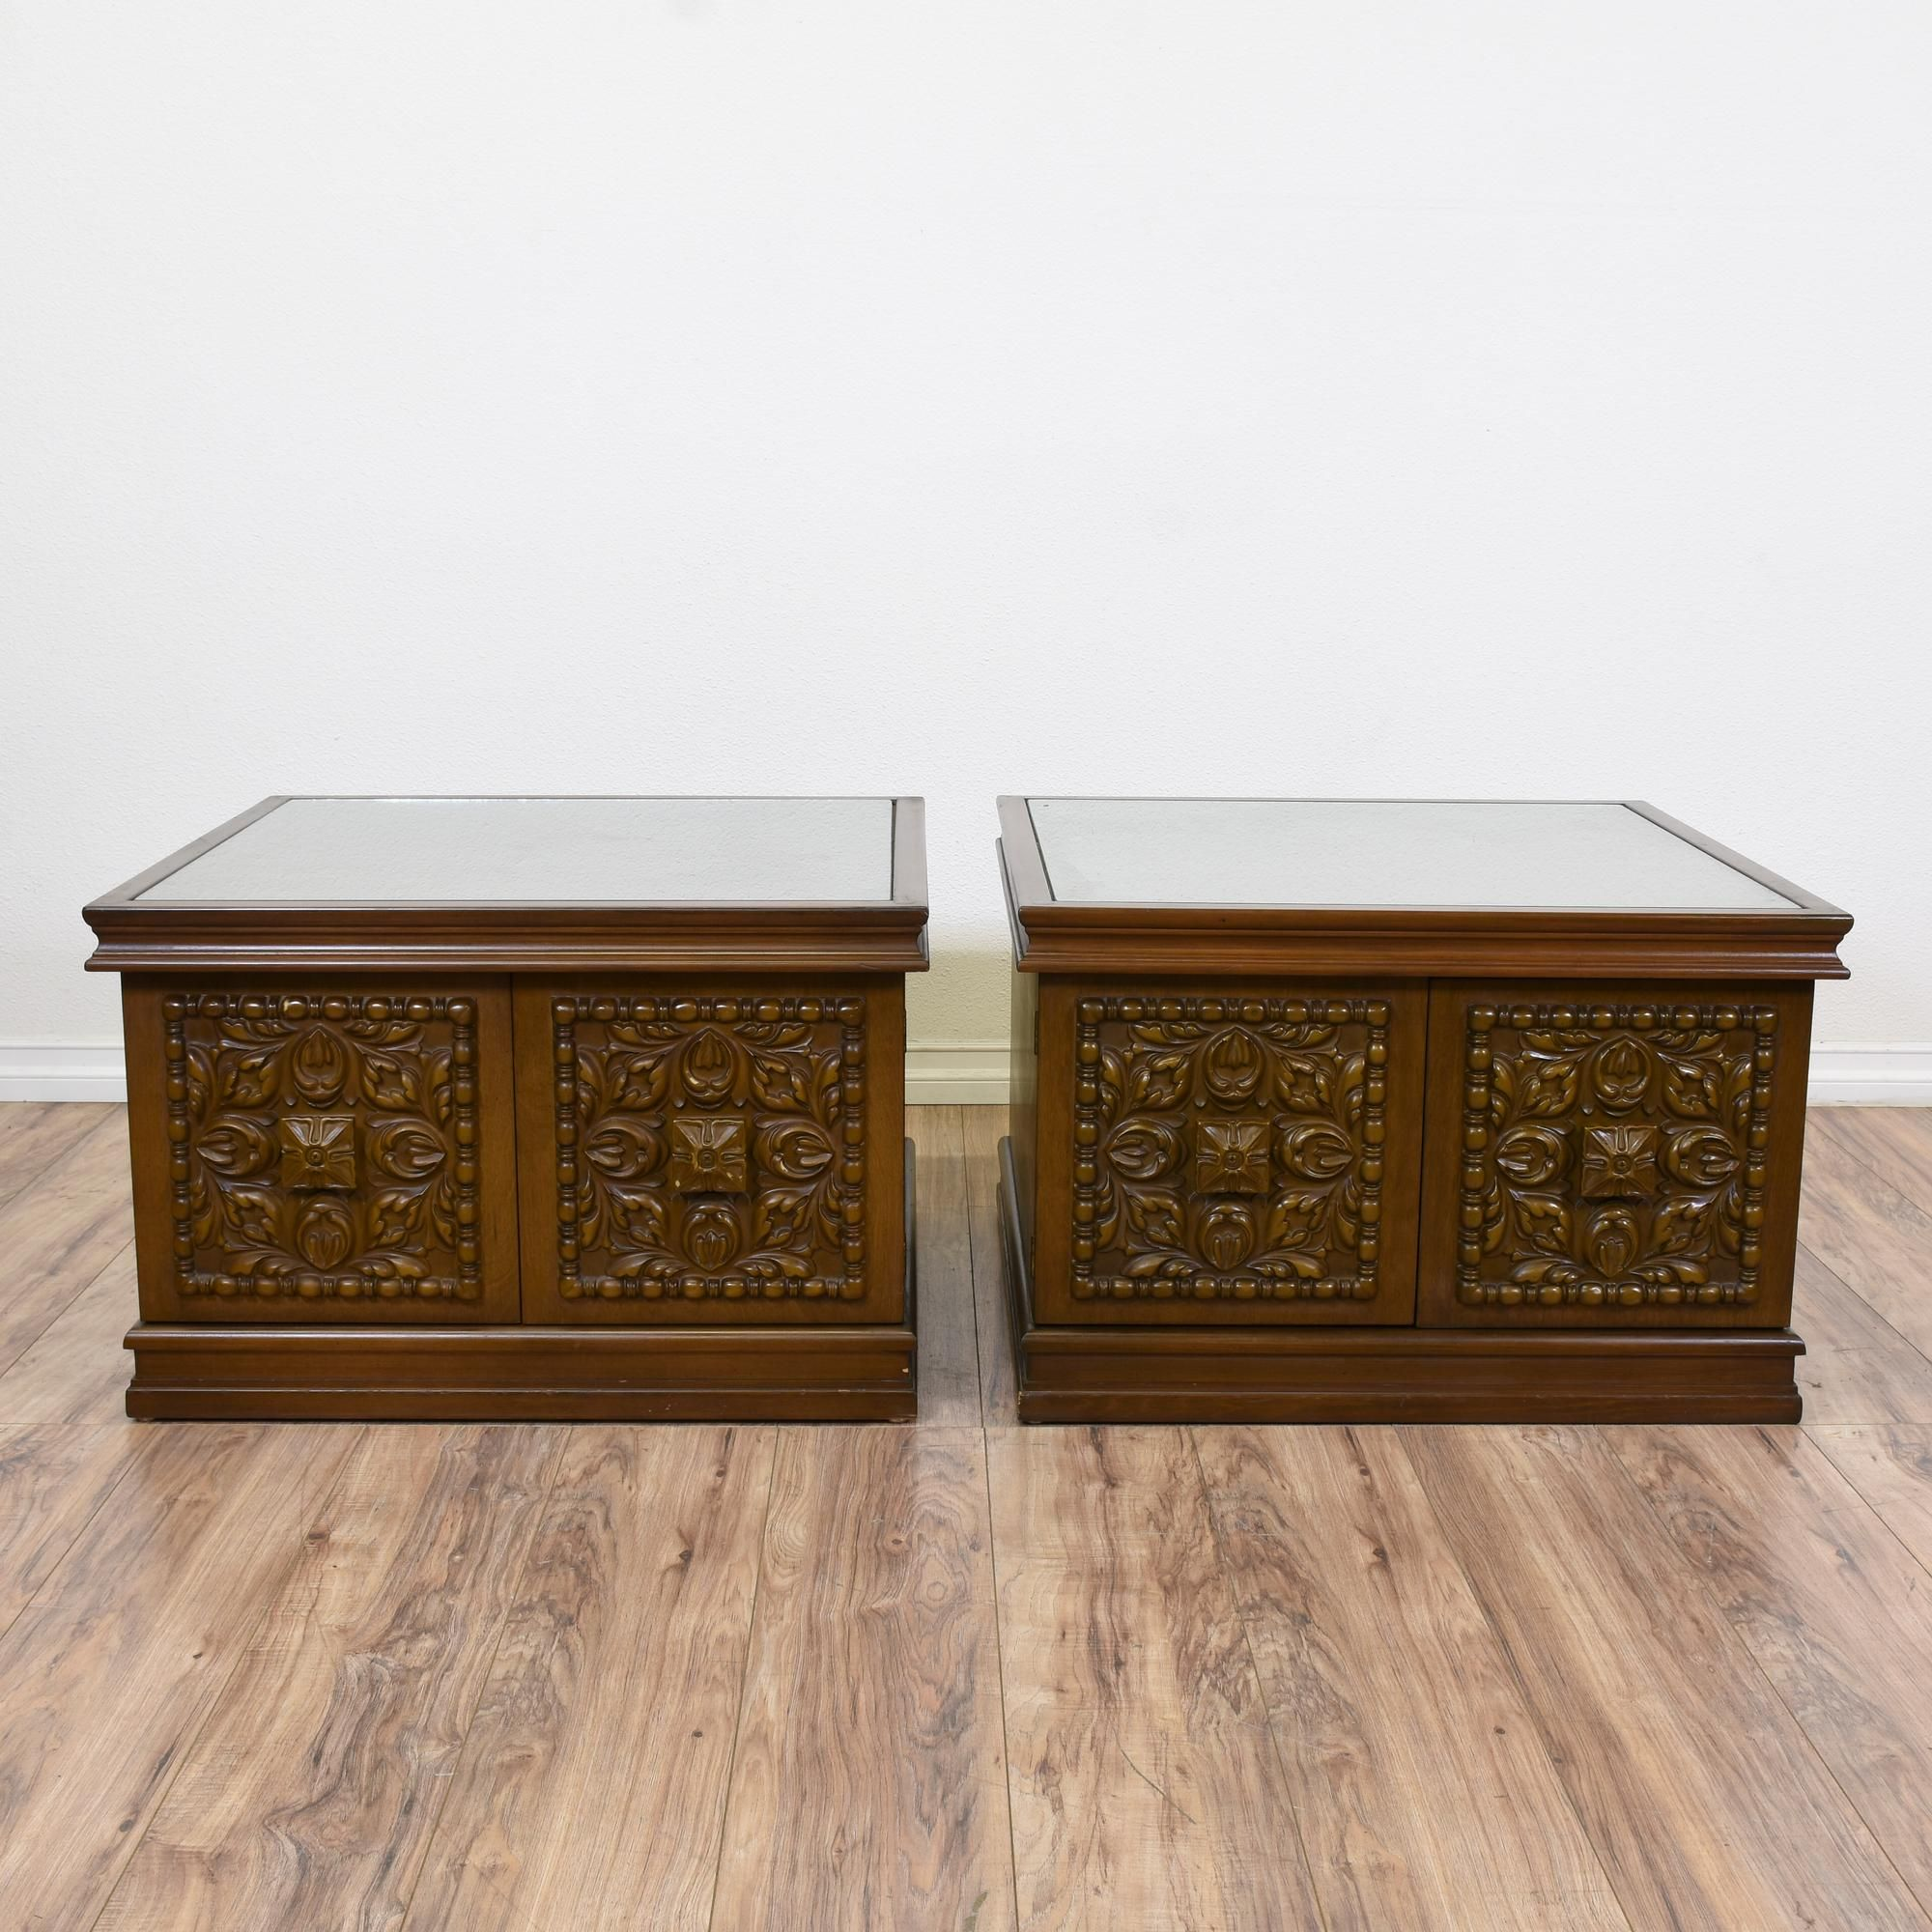 This pair of cabinet end tables are featured in a solid wood with a glossy walnut finish. These side tables are in good condition with square glass table tops, 2 intricate carved doors and a large interior cabinet. Perfect as nightstands with plenty of storage! #americanmidcentury #tables #endtable #sandiegovintage #vintagefurniture